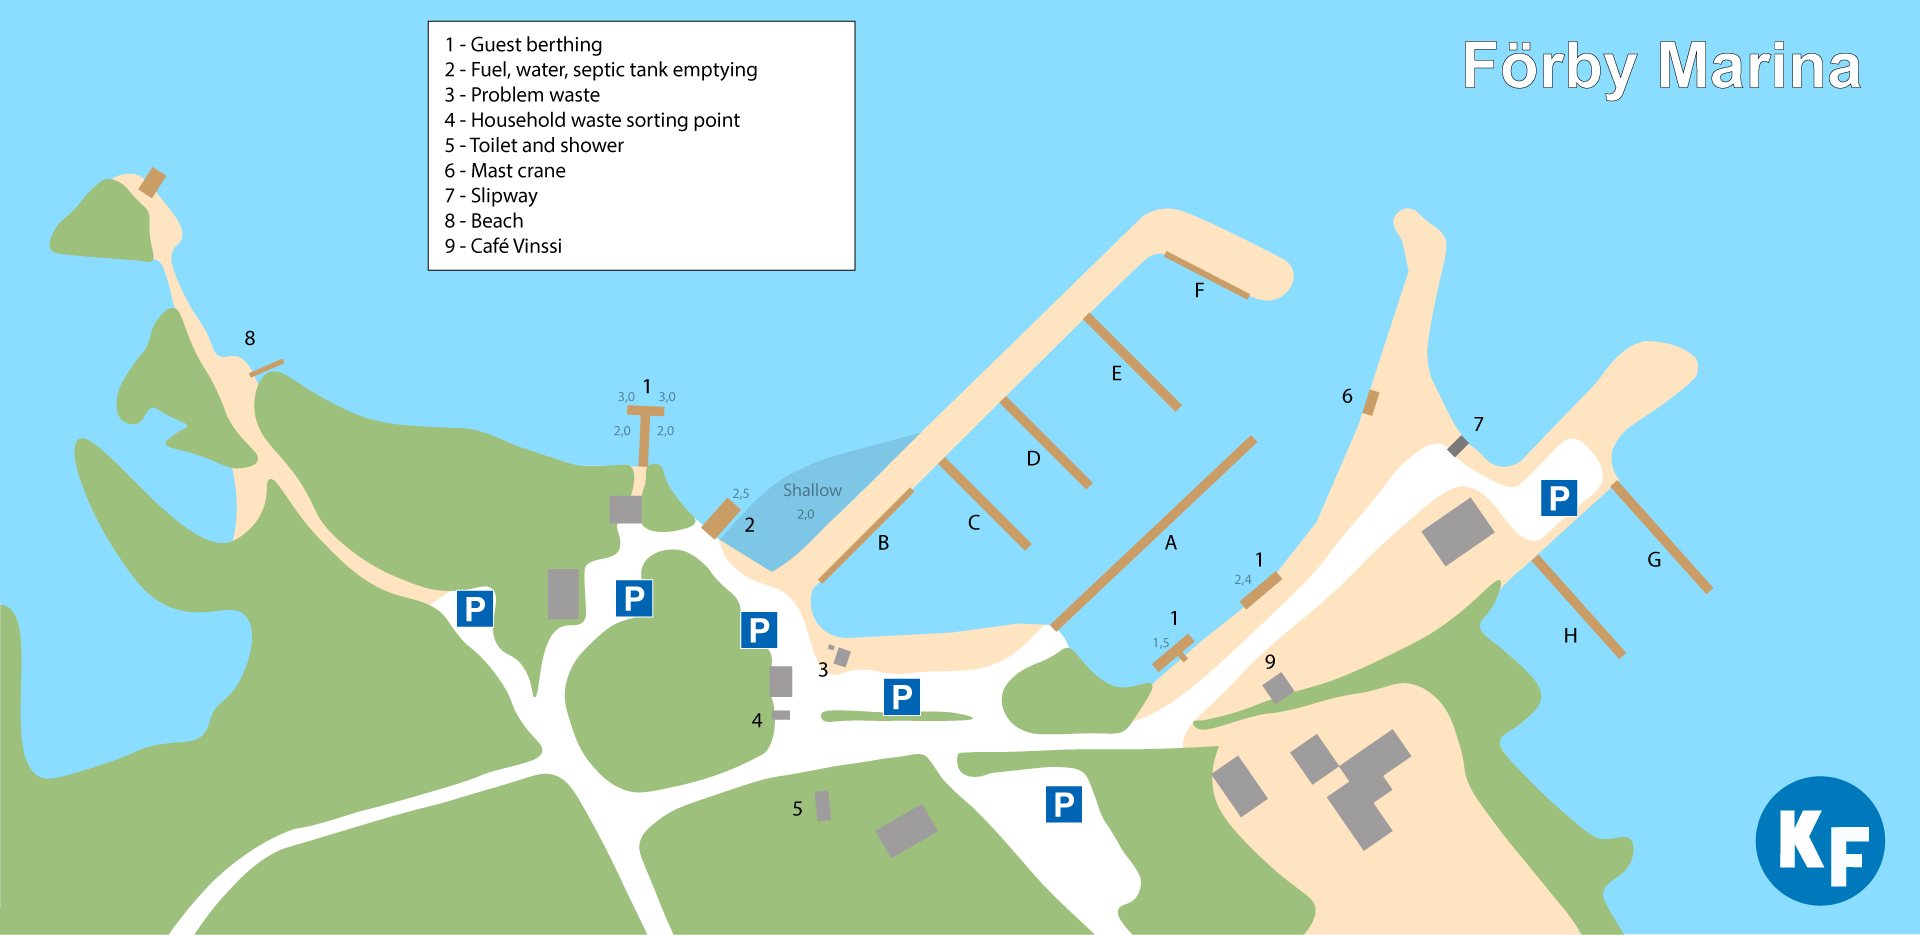 The Förby Marina harbour services for small boats are shown on the map.